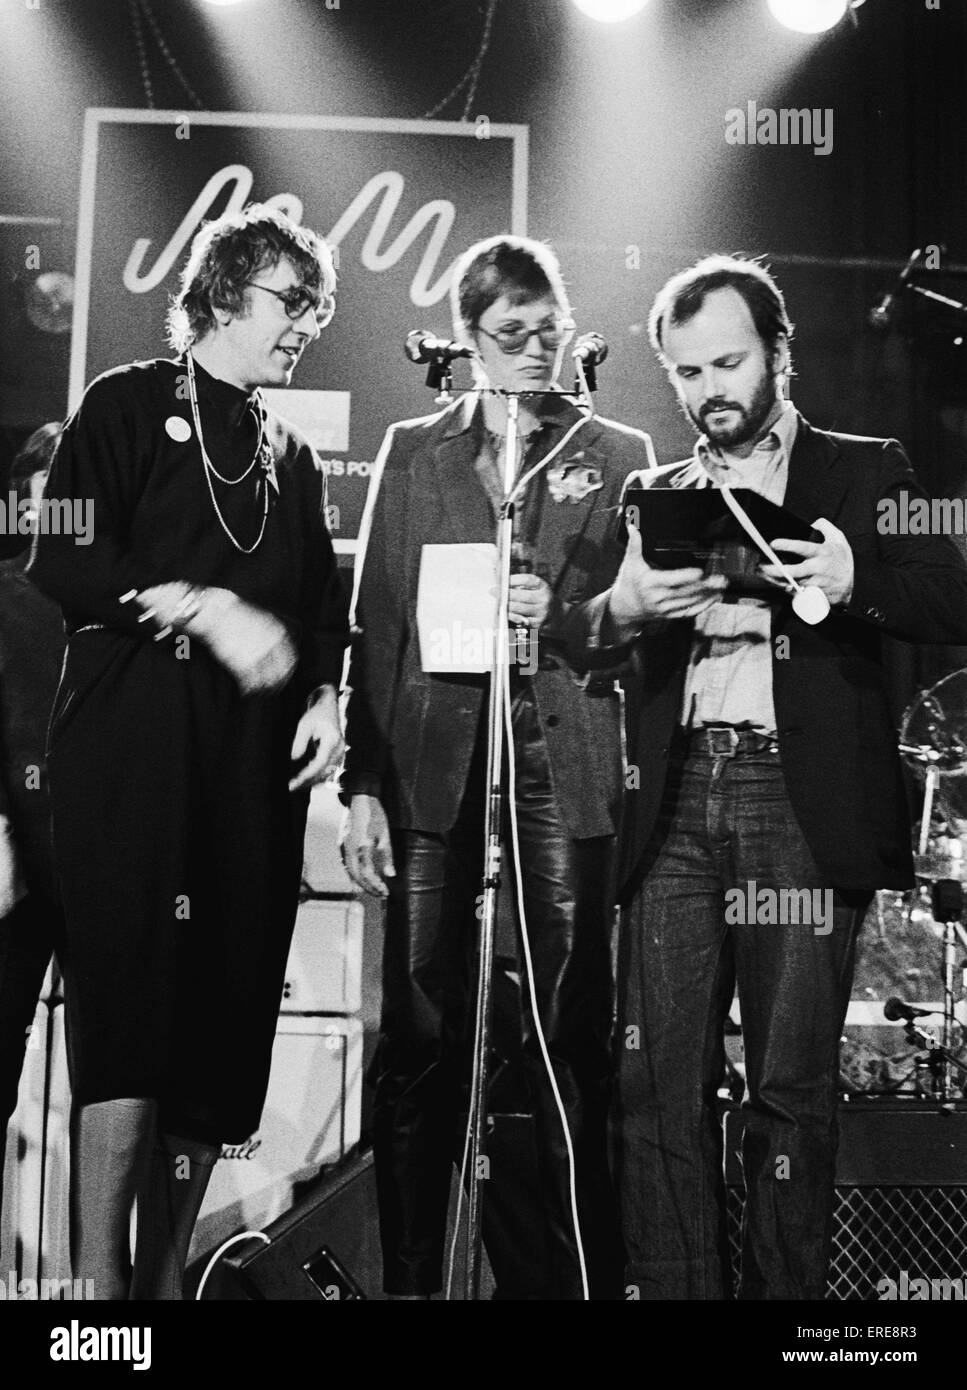 British DJ John Peel, OBE (1939-2004) receiving an award from Peter Cook (wearing a dress) and Janet Street-Porter - Stock Image